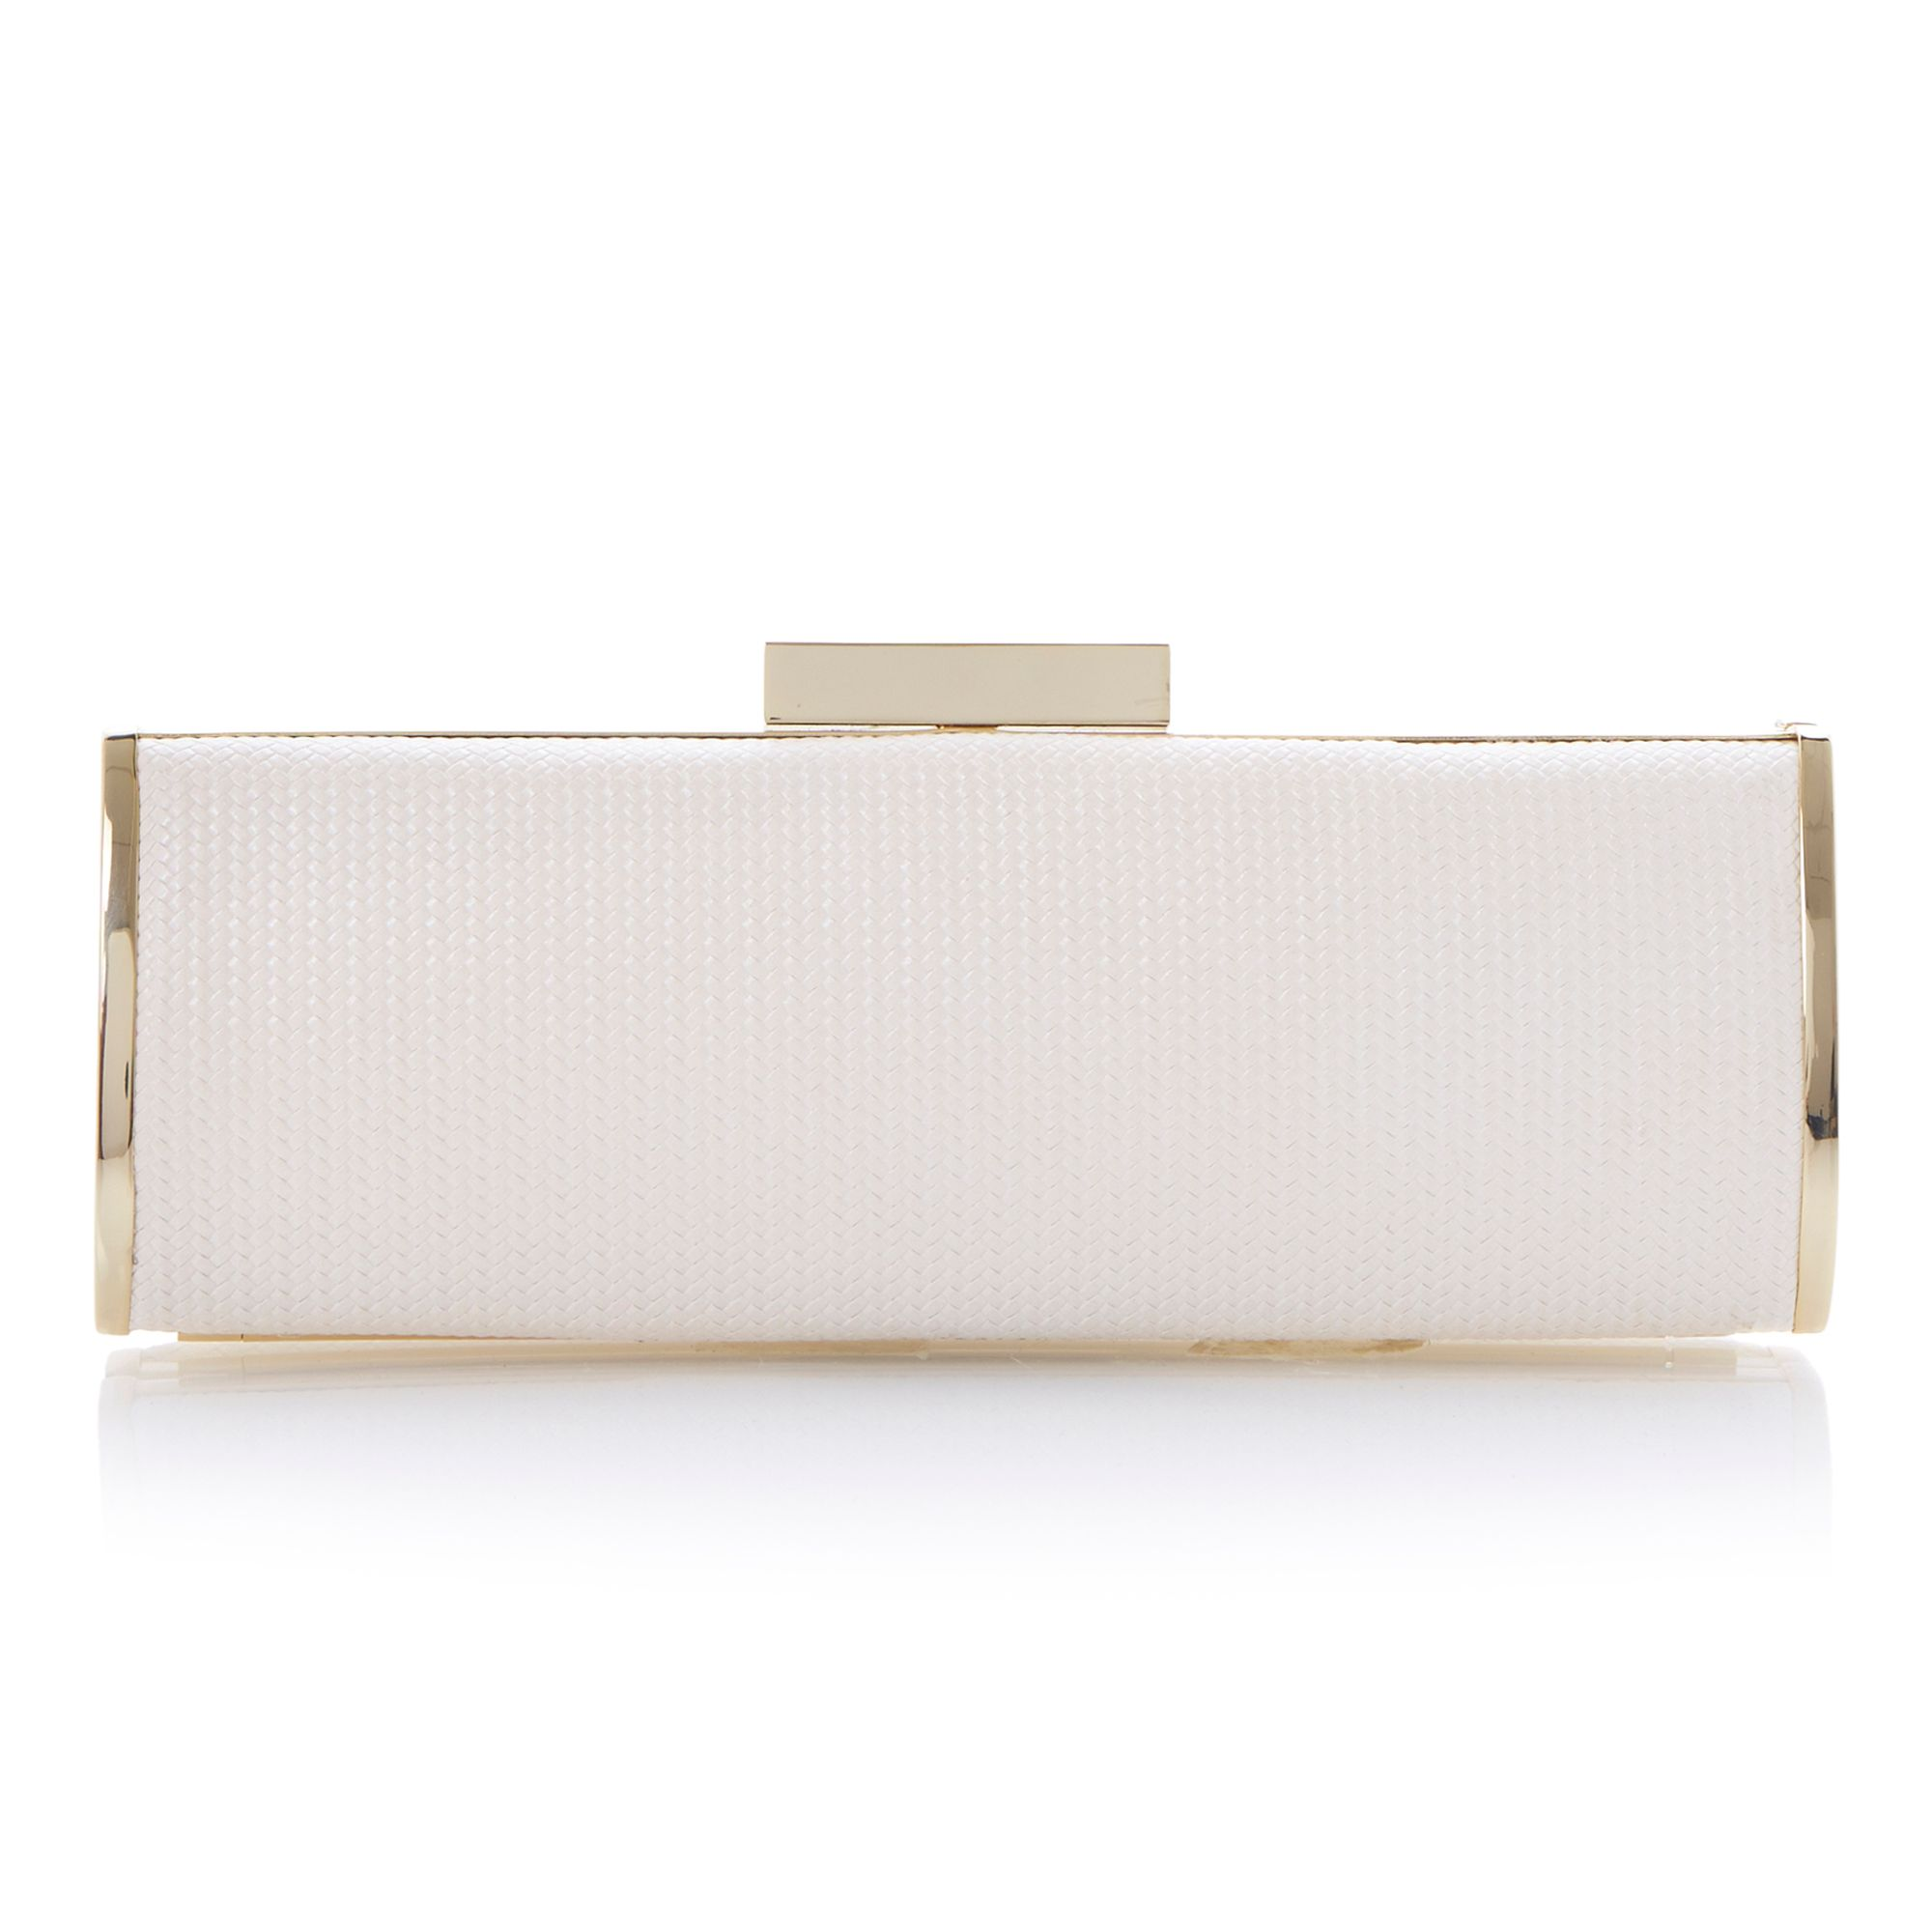 Bateenas leather woven ivory clutch bag